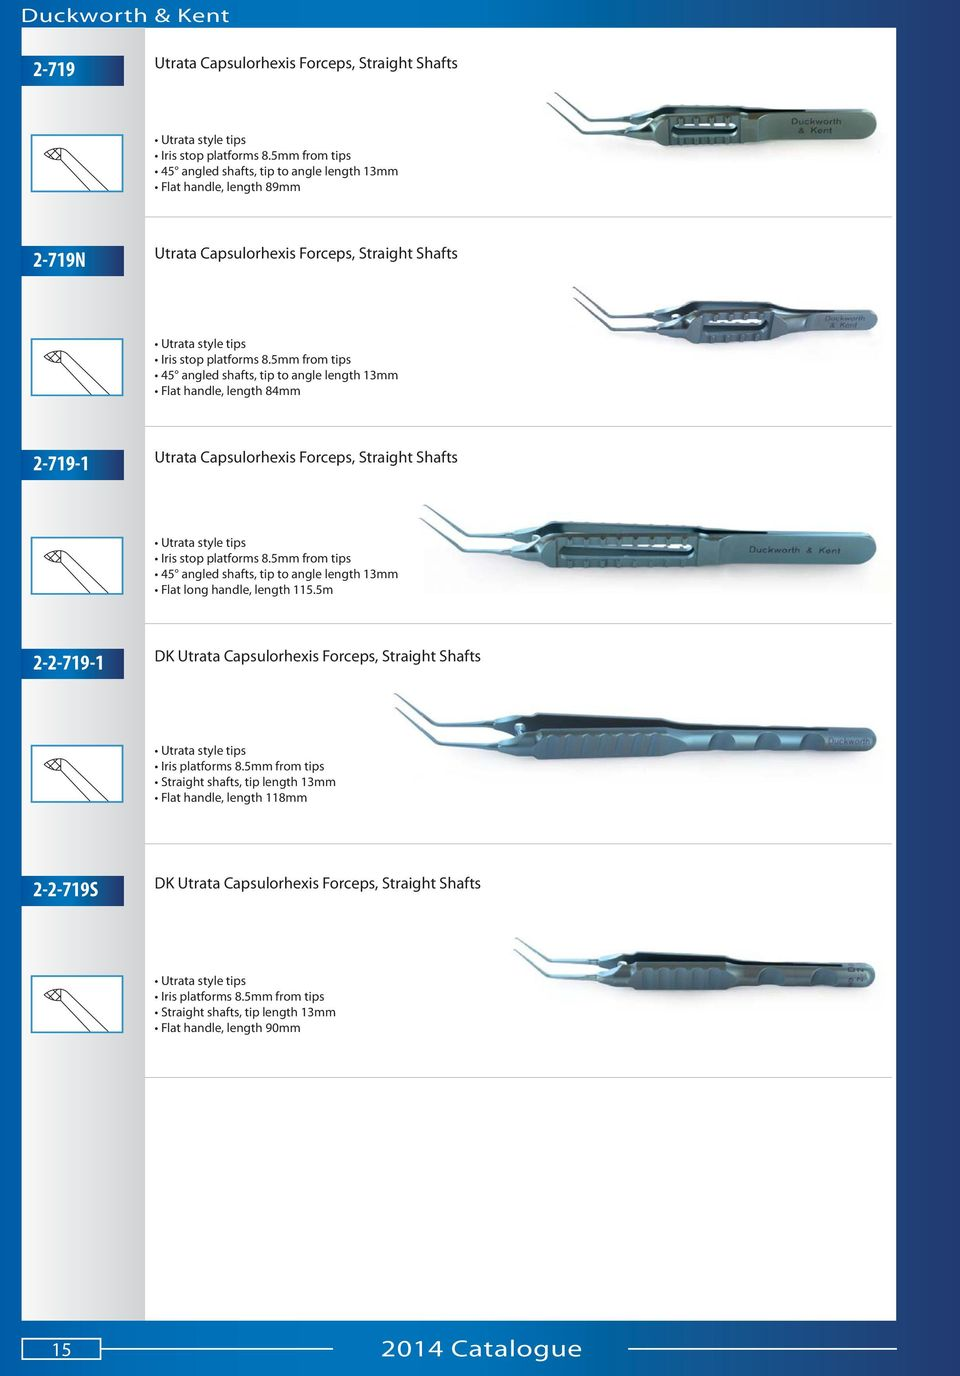 5mm from tips 45 angled shafts, tip to angle length 13mm Flat handle, length 84mm 2-719-1 Utrata Capsulorhexis Forceps, Straight Shafts Utrata style tips Iris stop platforms 8.